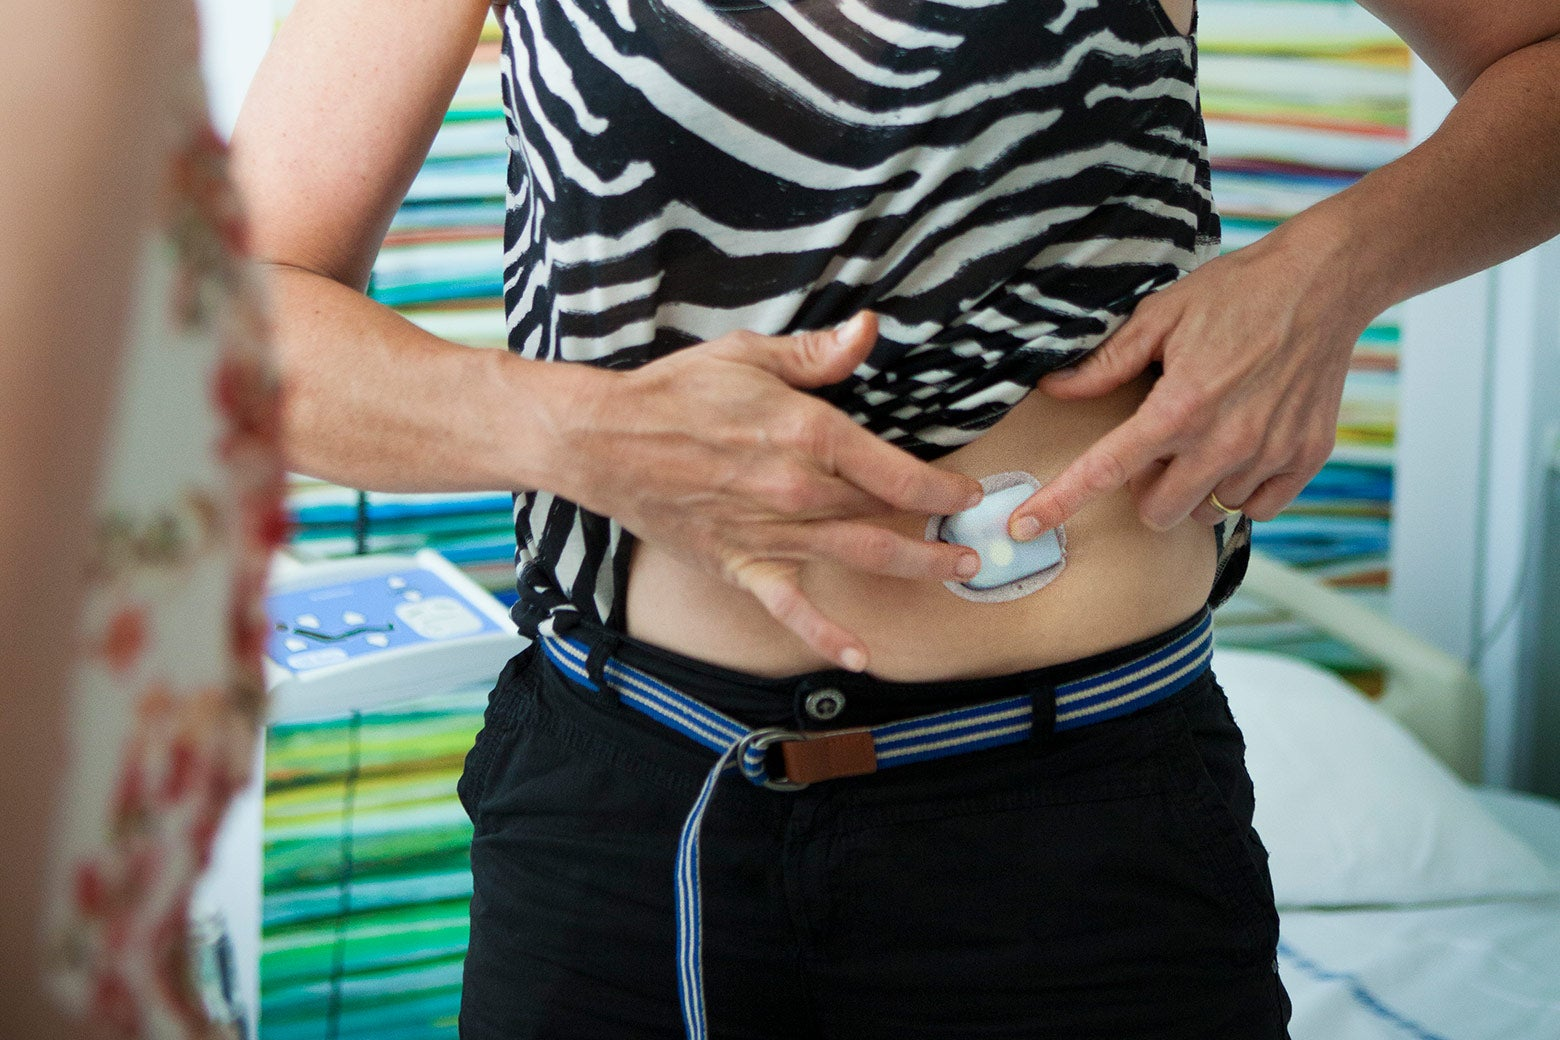 A person with their shirt pulled up to show off an insulin pump against her stomach.